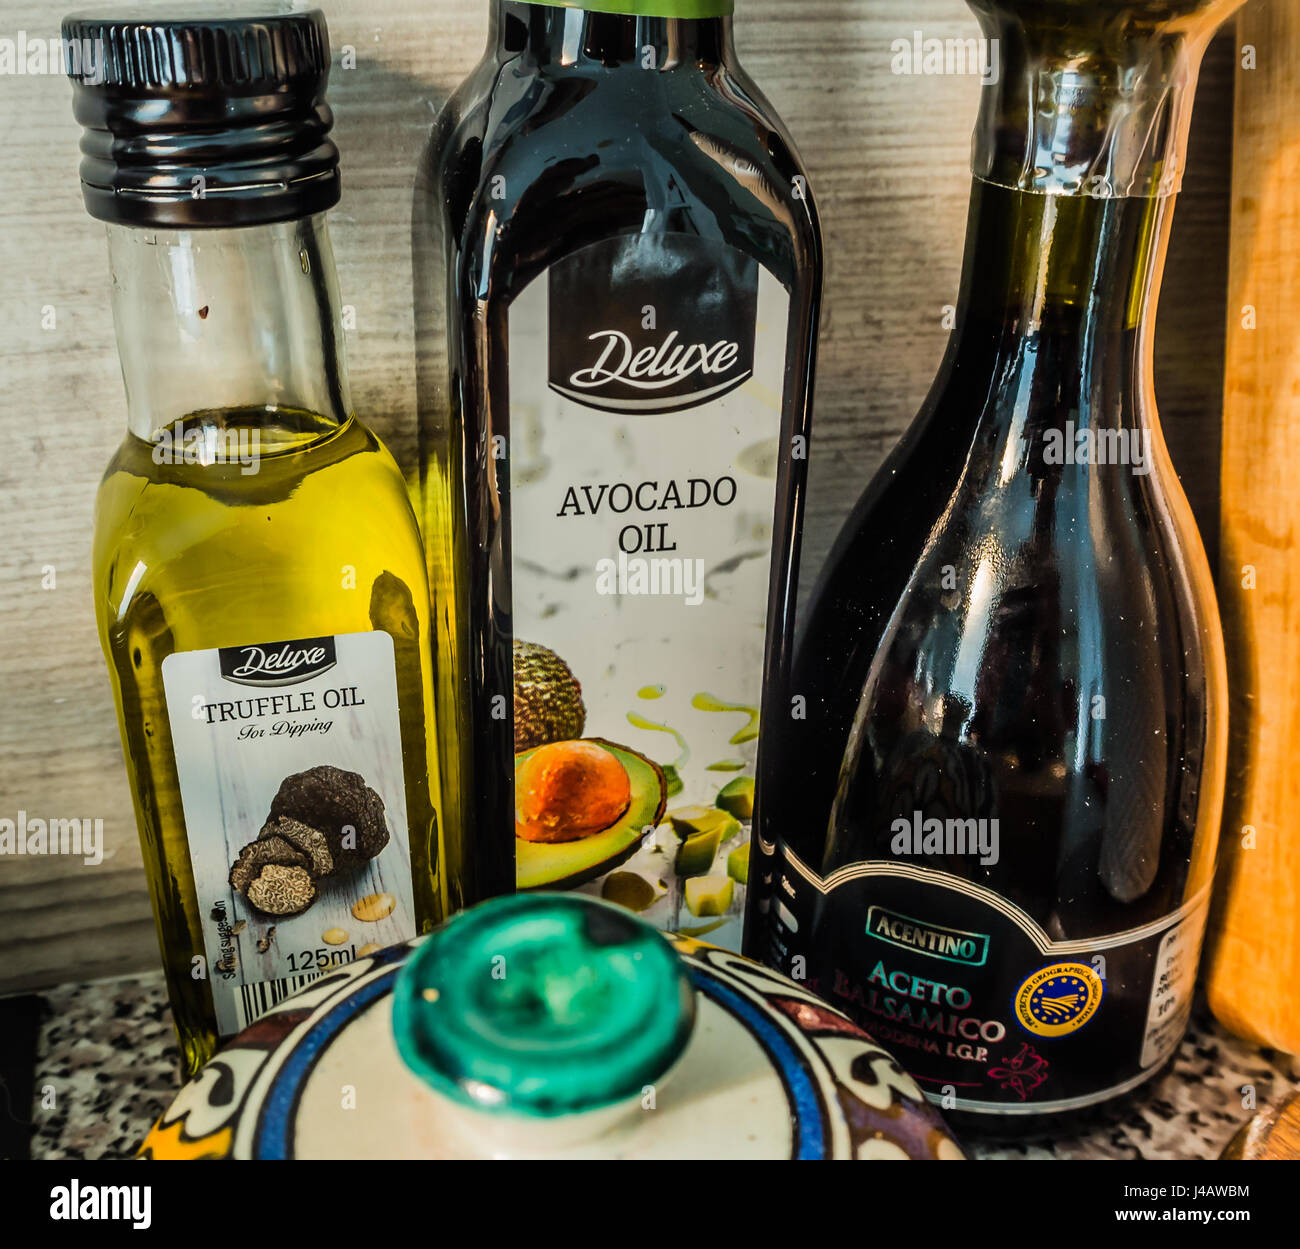 Deluxe Oils From Lidl Stock Photo 140381016 Alamy